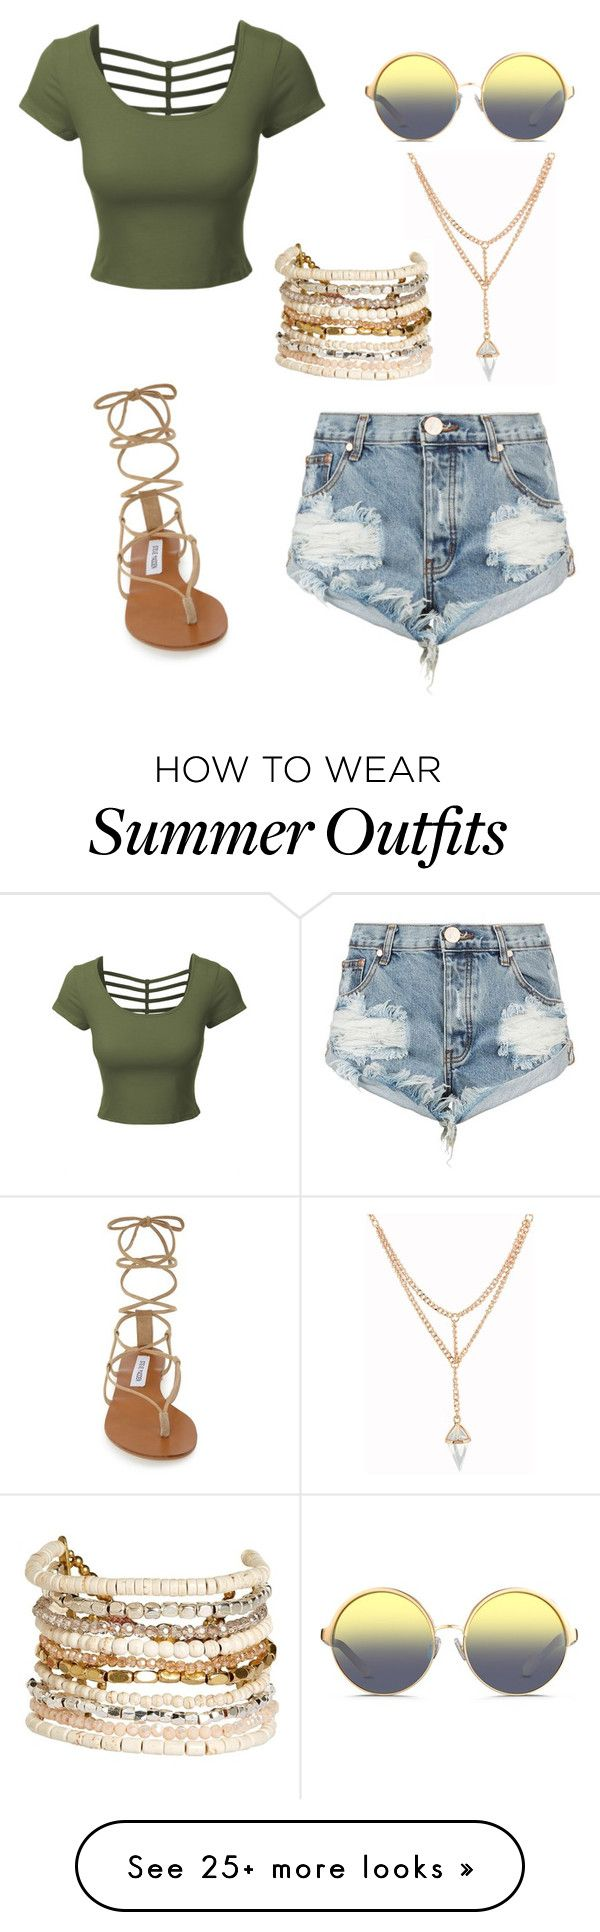 """Everyday summer outfit"" by untoldseecrets on Polyvore featuring LE3NO, One Teaspoon, Matthew Williamson, Steve Madden and Panacea"